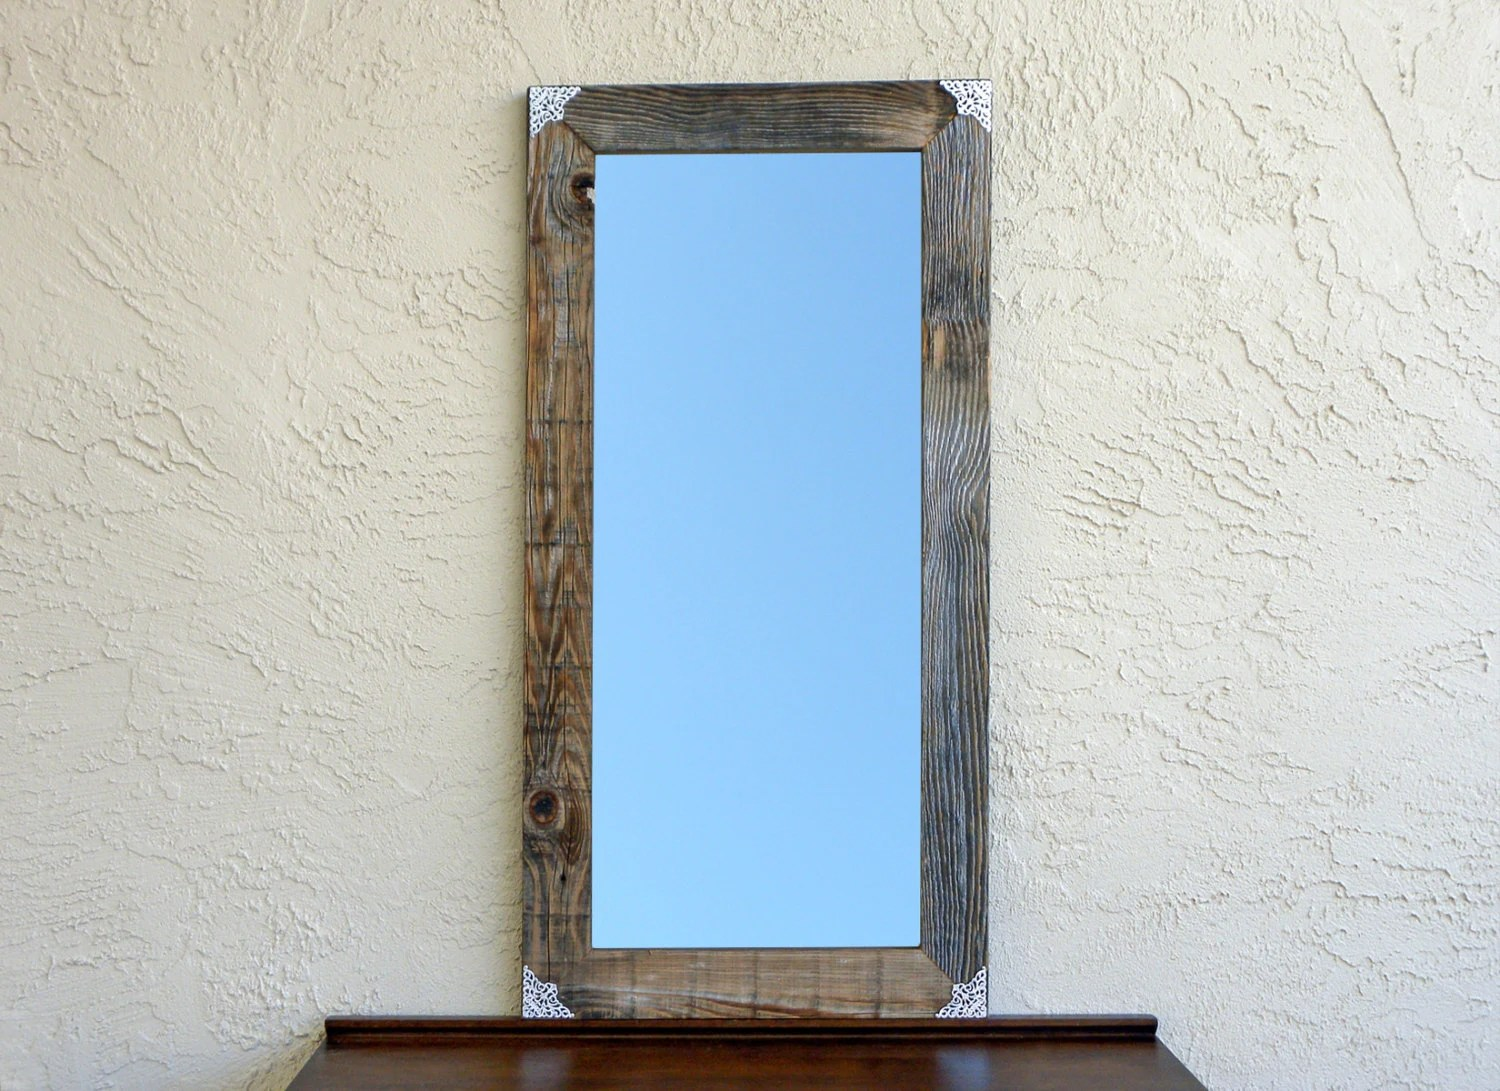 Reclaimed Wooden Mirror With Silver Filigree Corners. Rustic